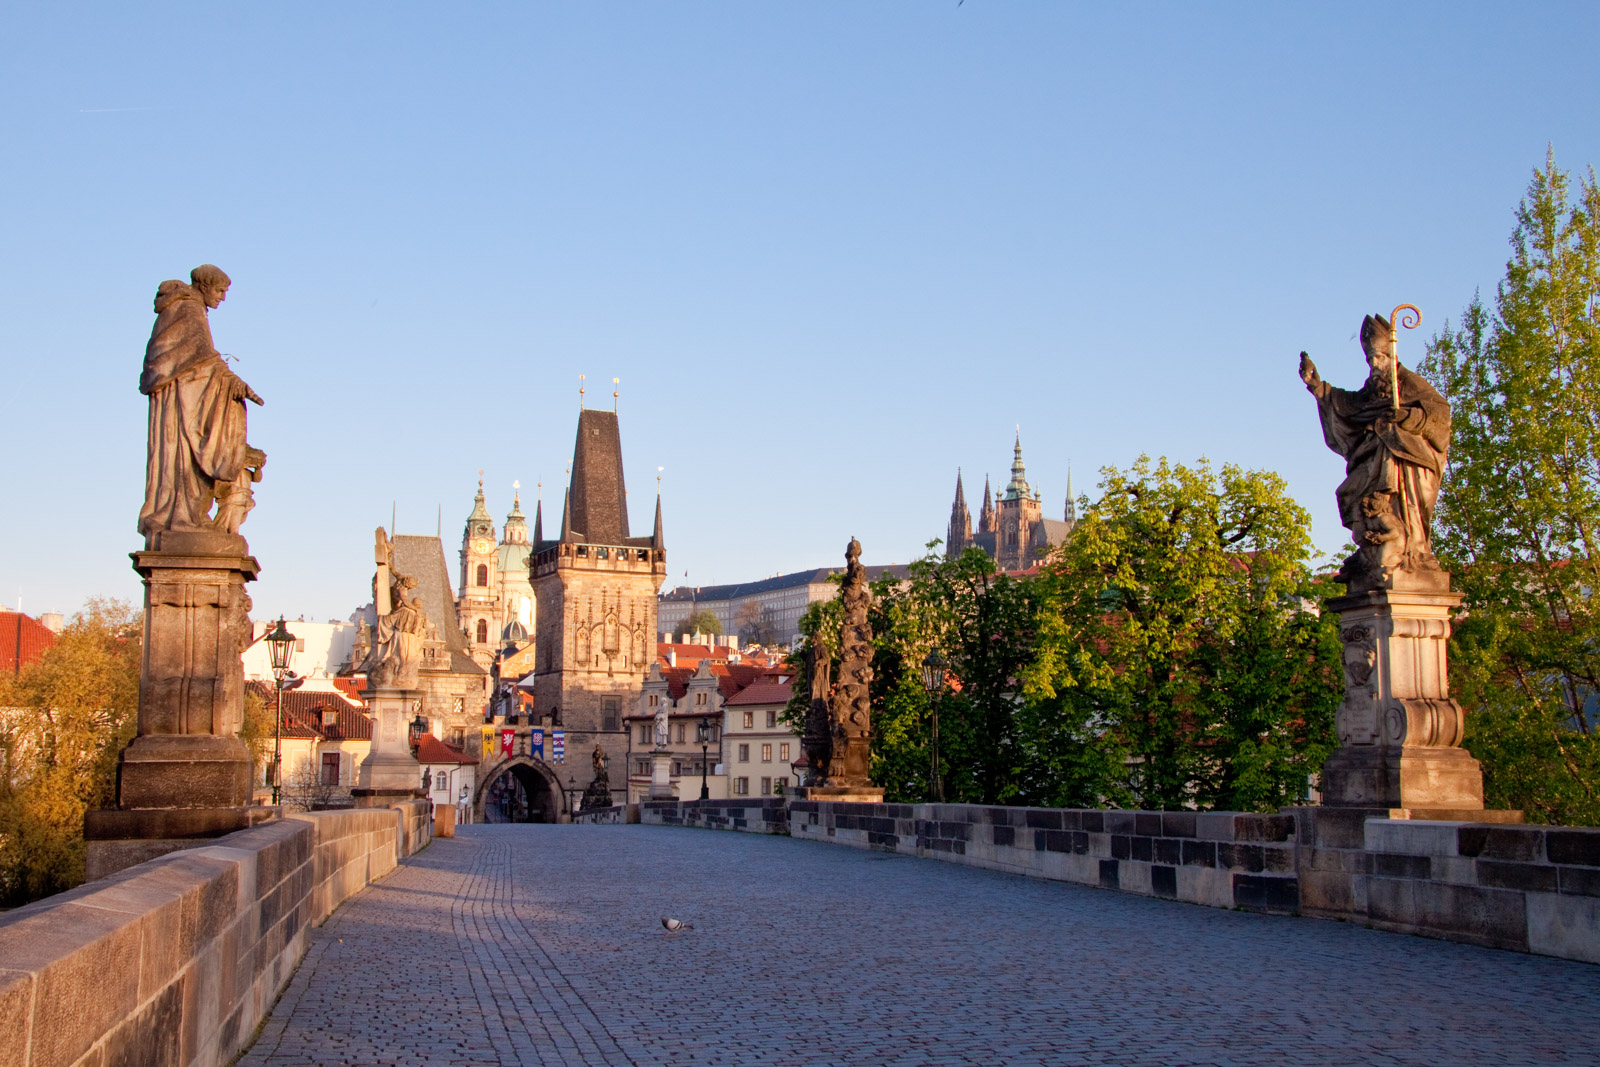 sunrise - charles bridge